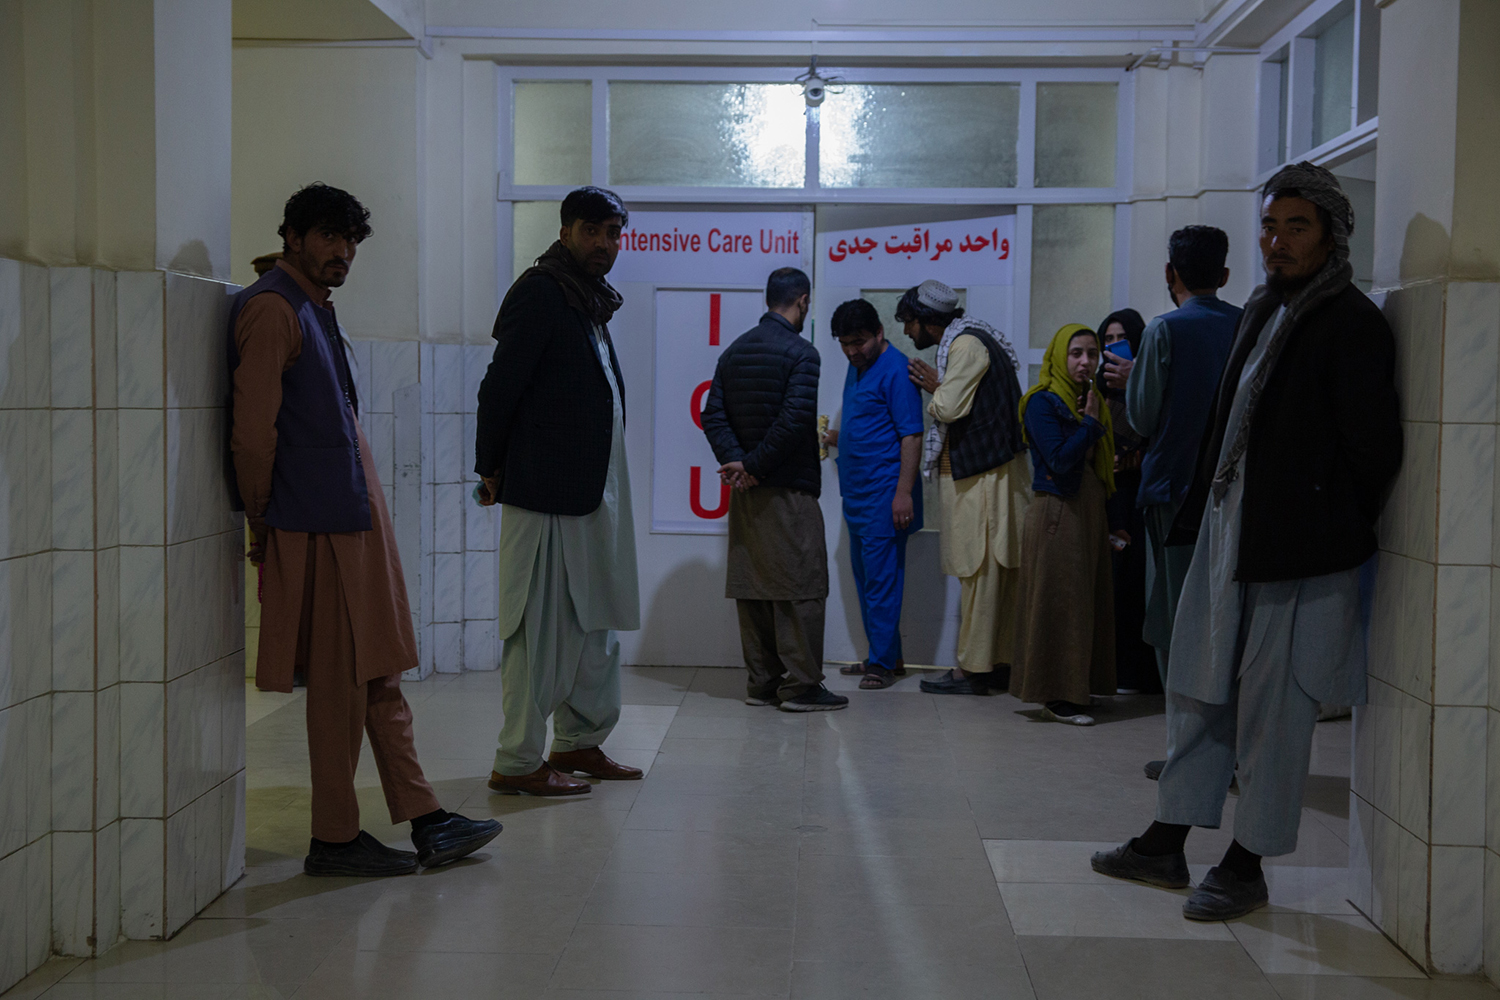 Family members of students injured in the Kabul University attack wait outside the intensive care unit at Ali Abed hospital, a clinic right opposite the university, on Nov. 2.